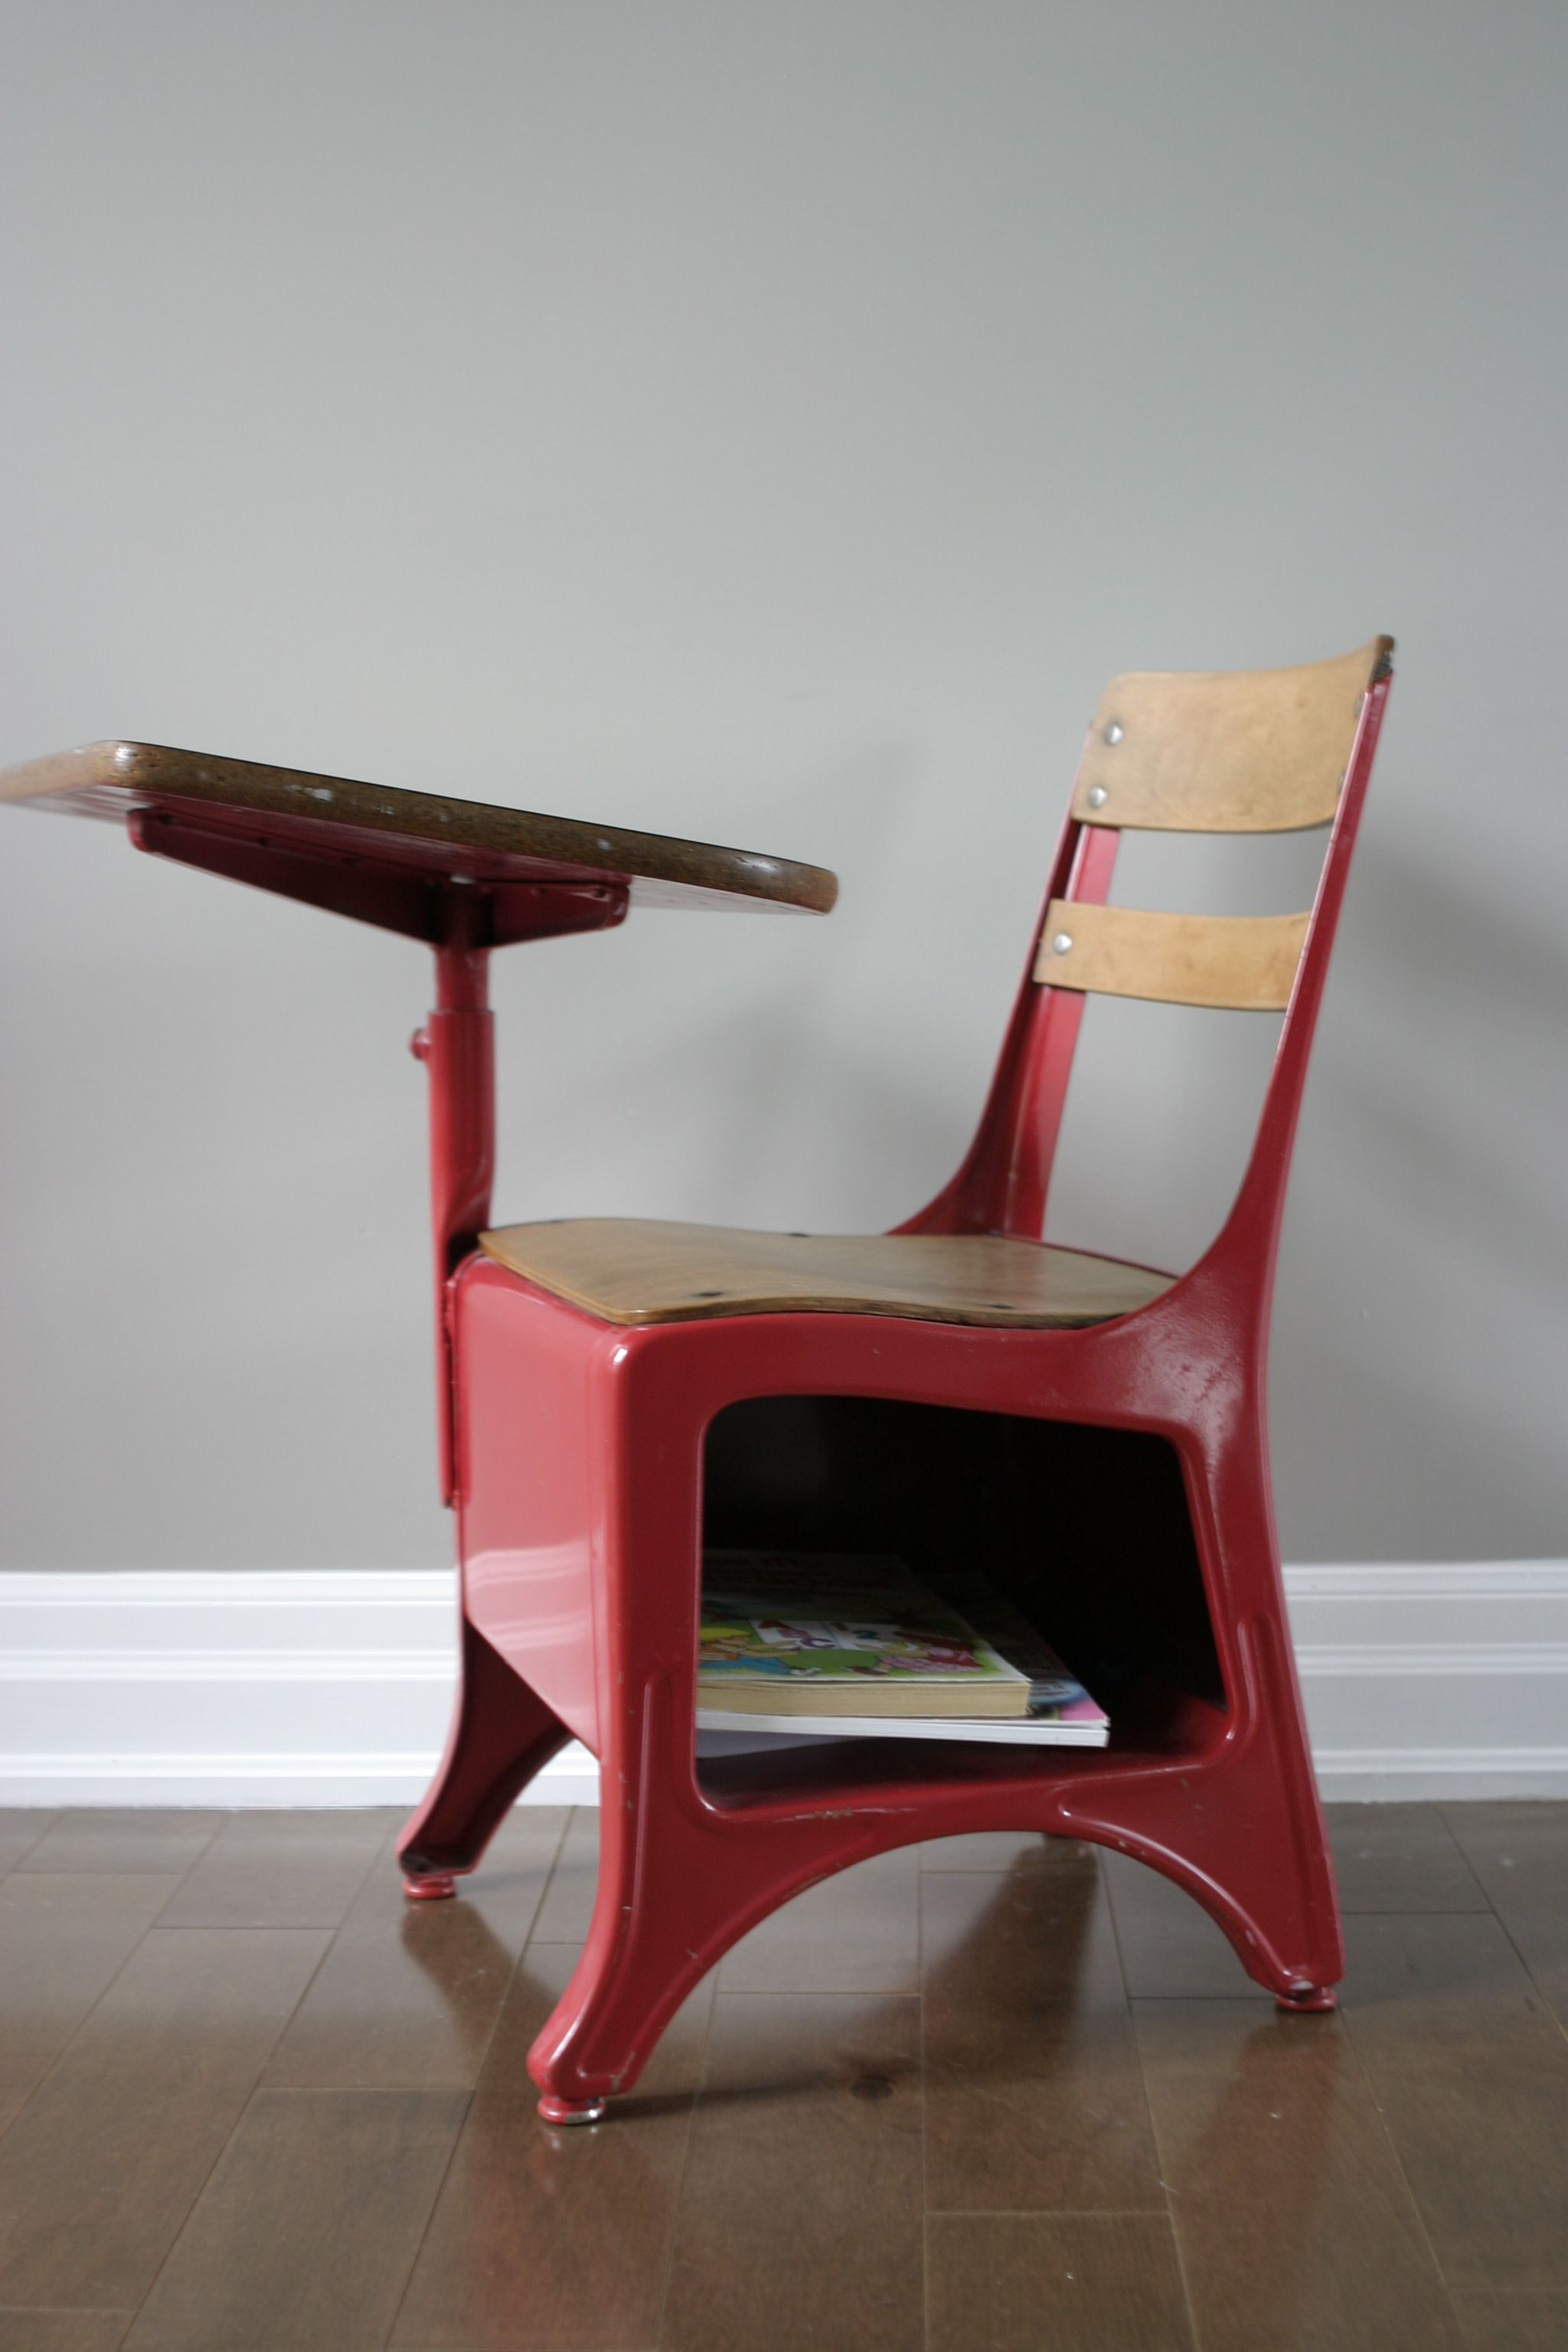 Wooden school desk and chair Tablet Arm Vintage School Desk Chair Spray Painted Apple Red This Great Idea For The 5 Desk Bought At Yard Sale Pinterest Just Spray It Crafts Pinterest School Desks Old School Desks